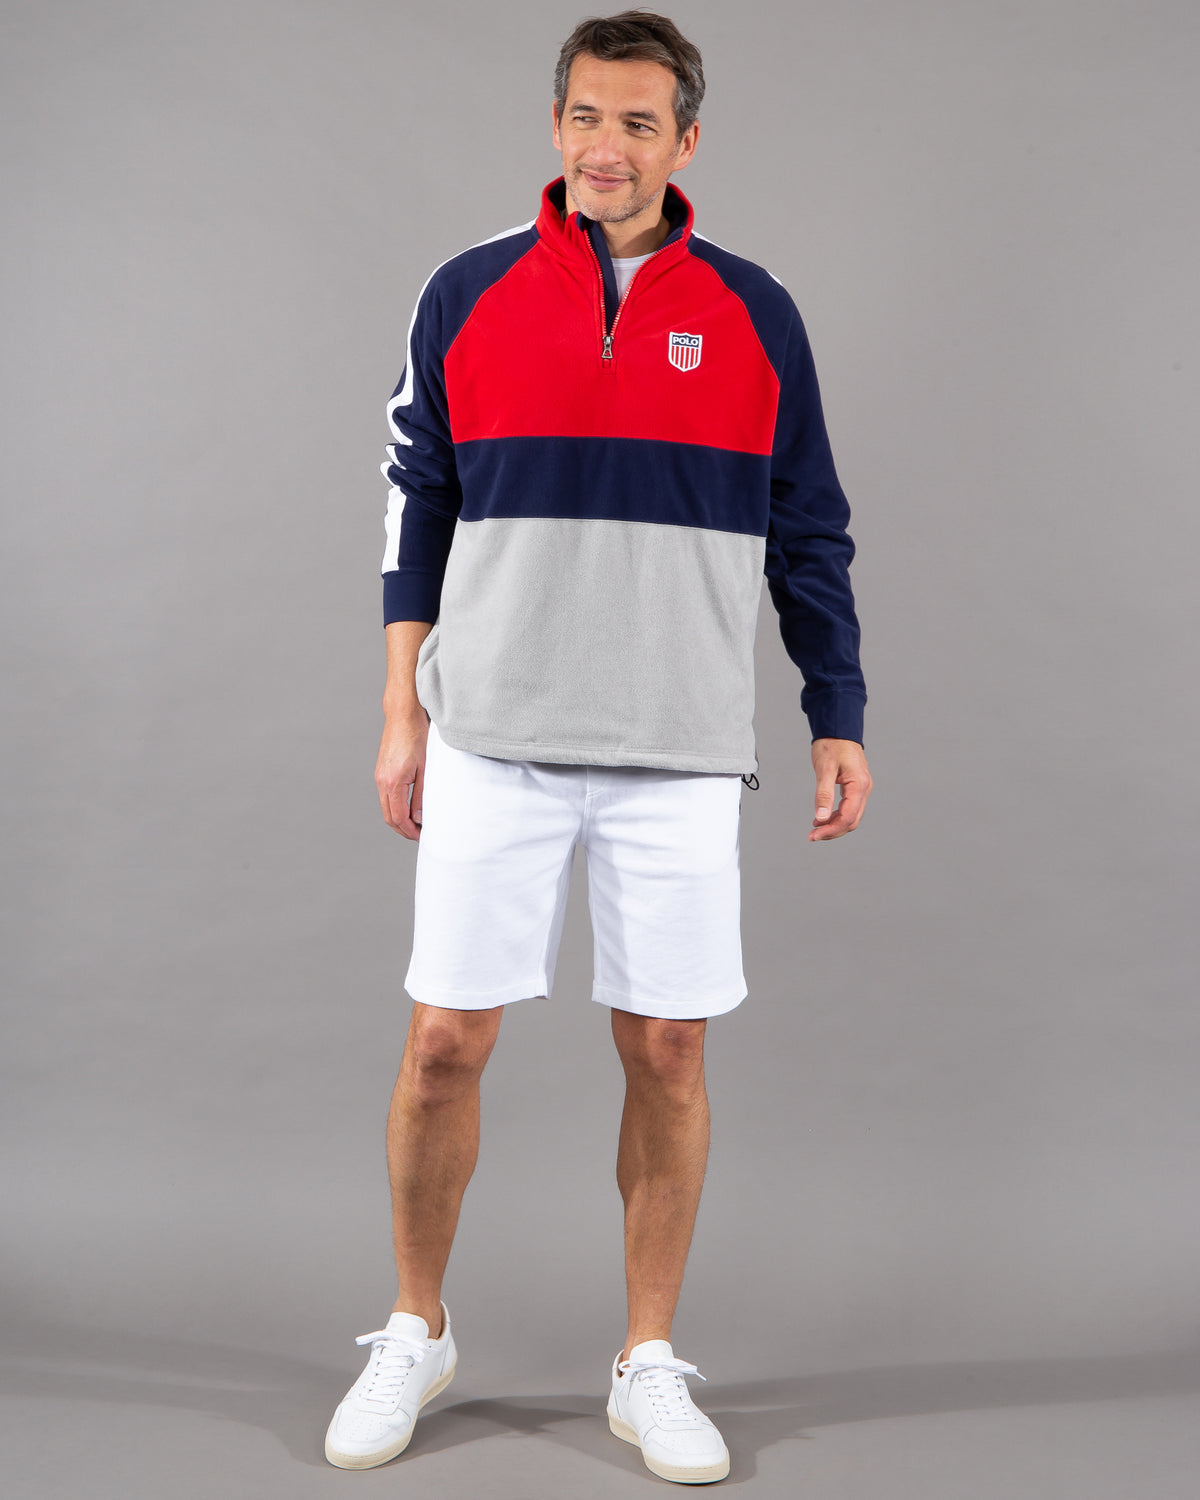 Polo Ralph Lauren, FleecePullover zipper 100% polyester navy blue white red with Polo Letters and Flag on back